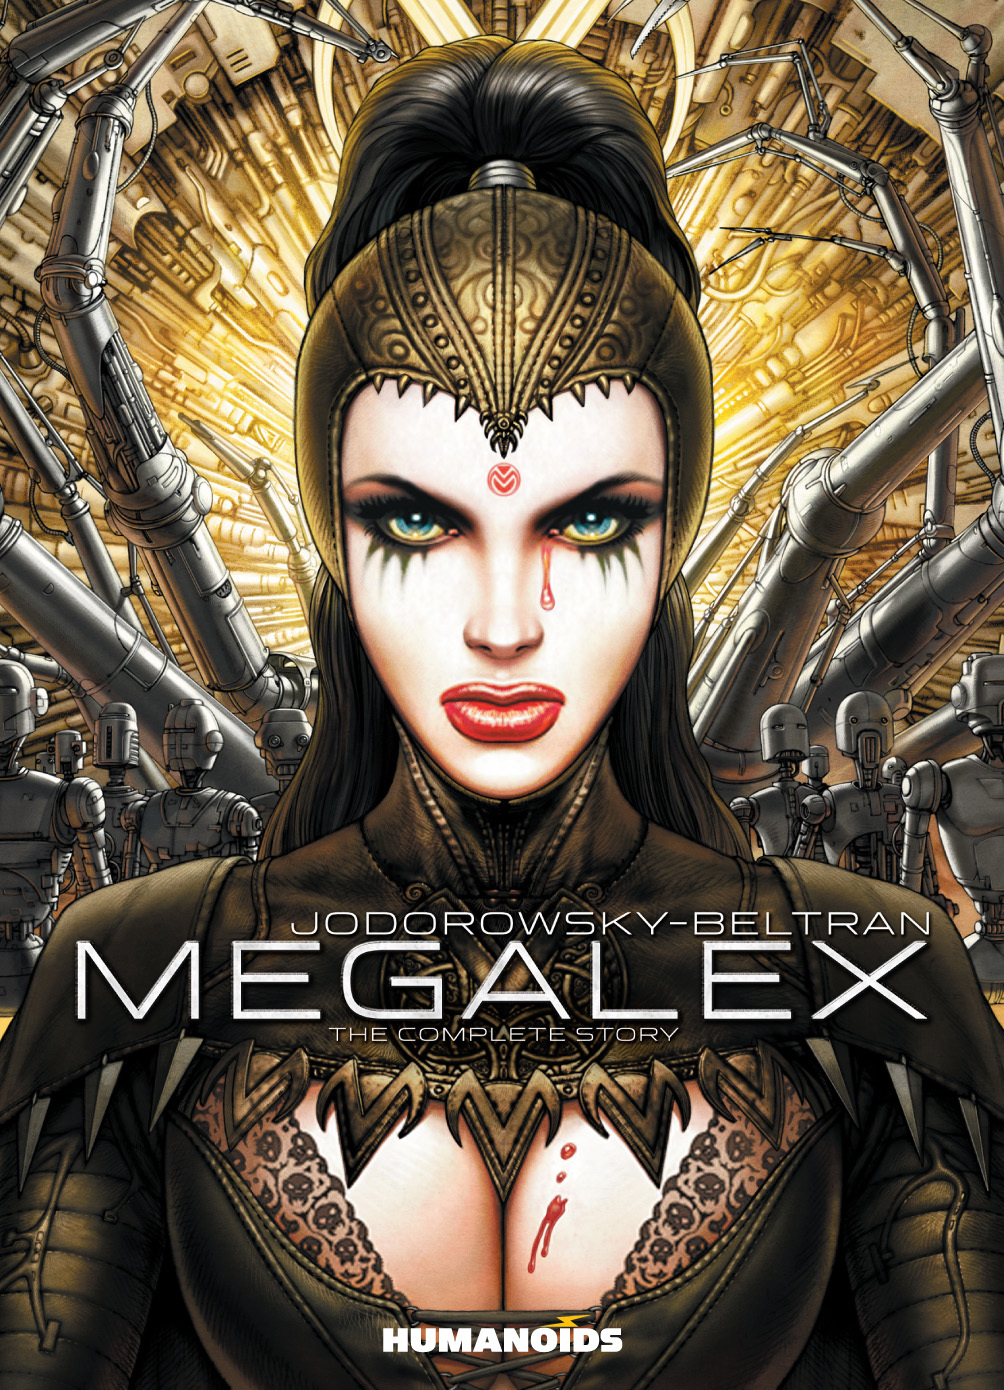 Megalex : The Complete Story - Hardcover Trade